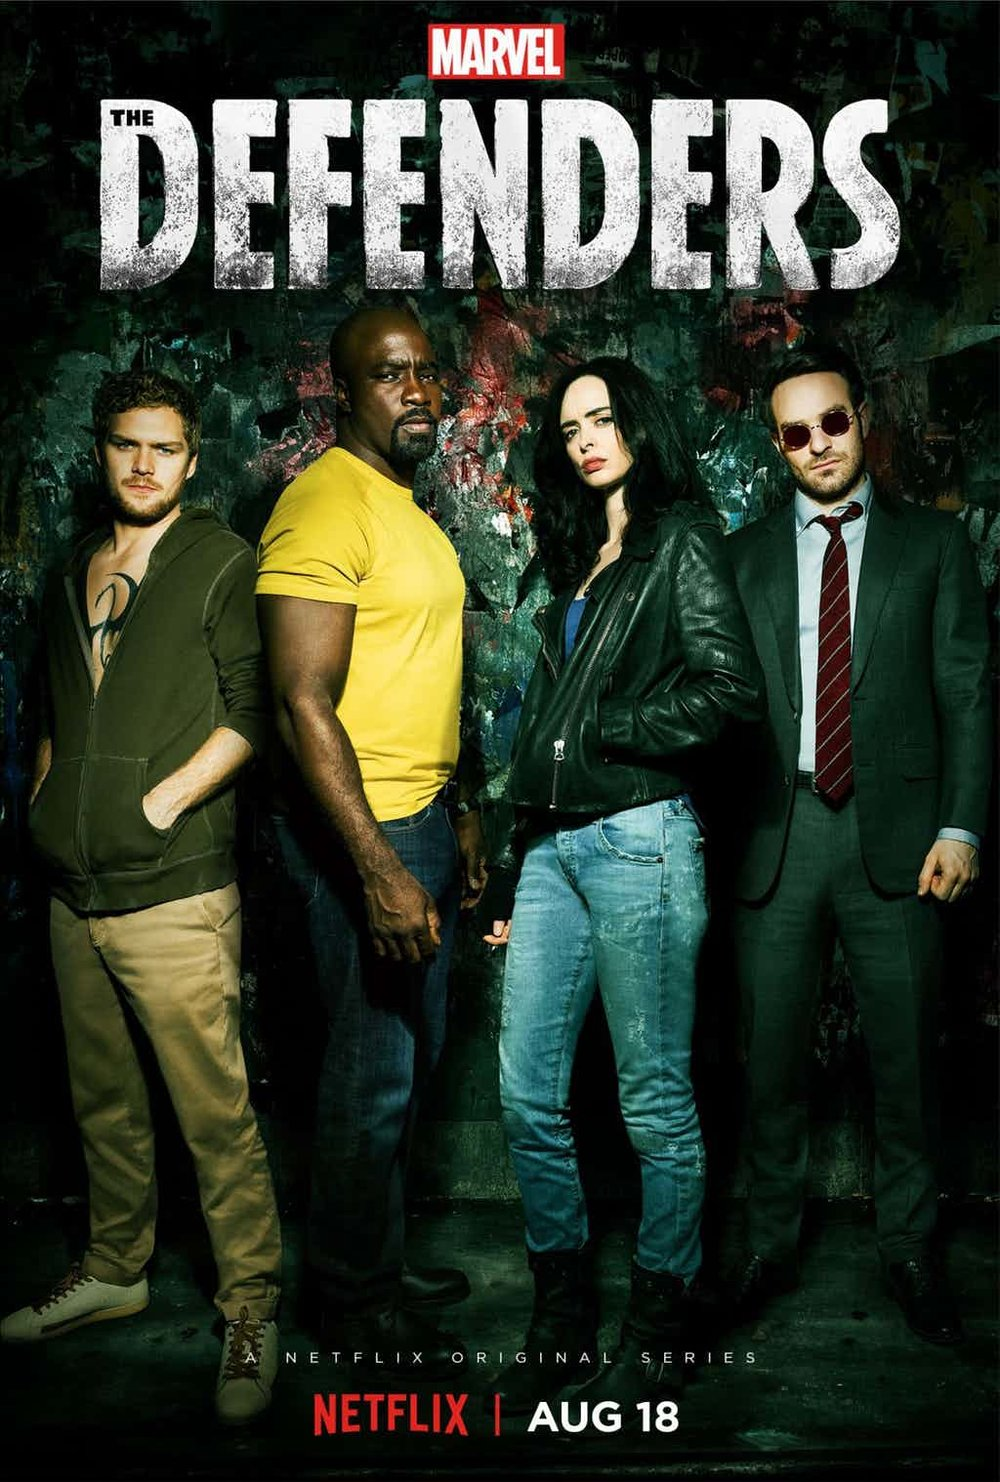 Marvel's_The_Defenders_poster_003.jpg